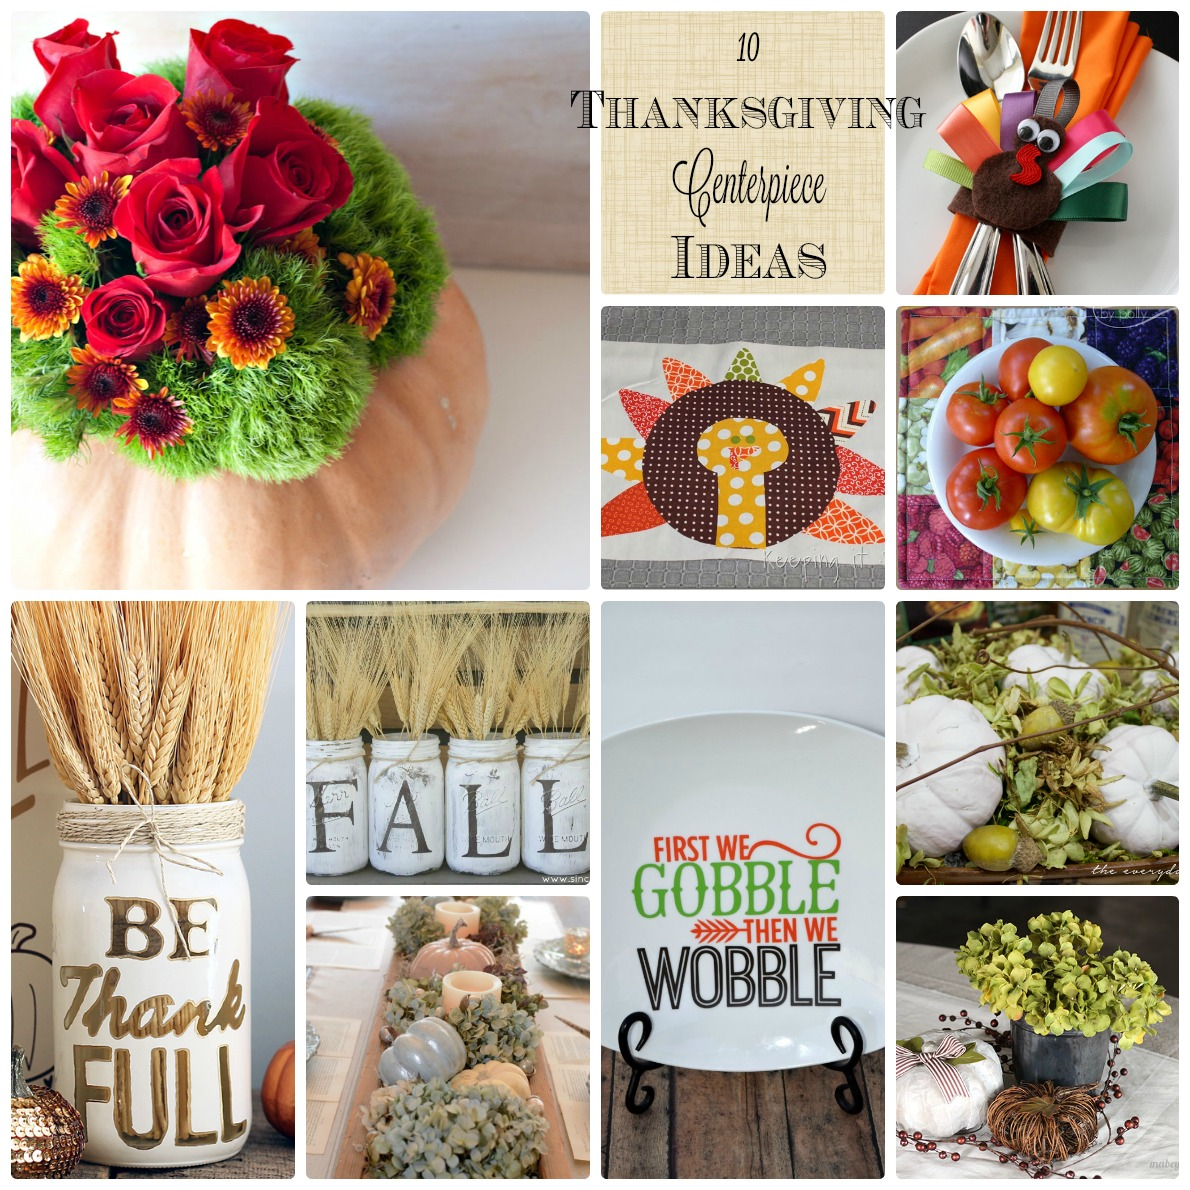 http://makingtheworldcuter.com/wp-content/uploads/2015/11/Thanksgiving-Centerpiece-Ideas.jpg